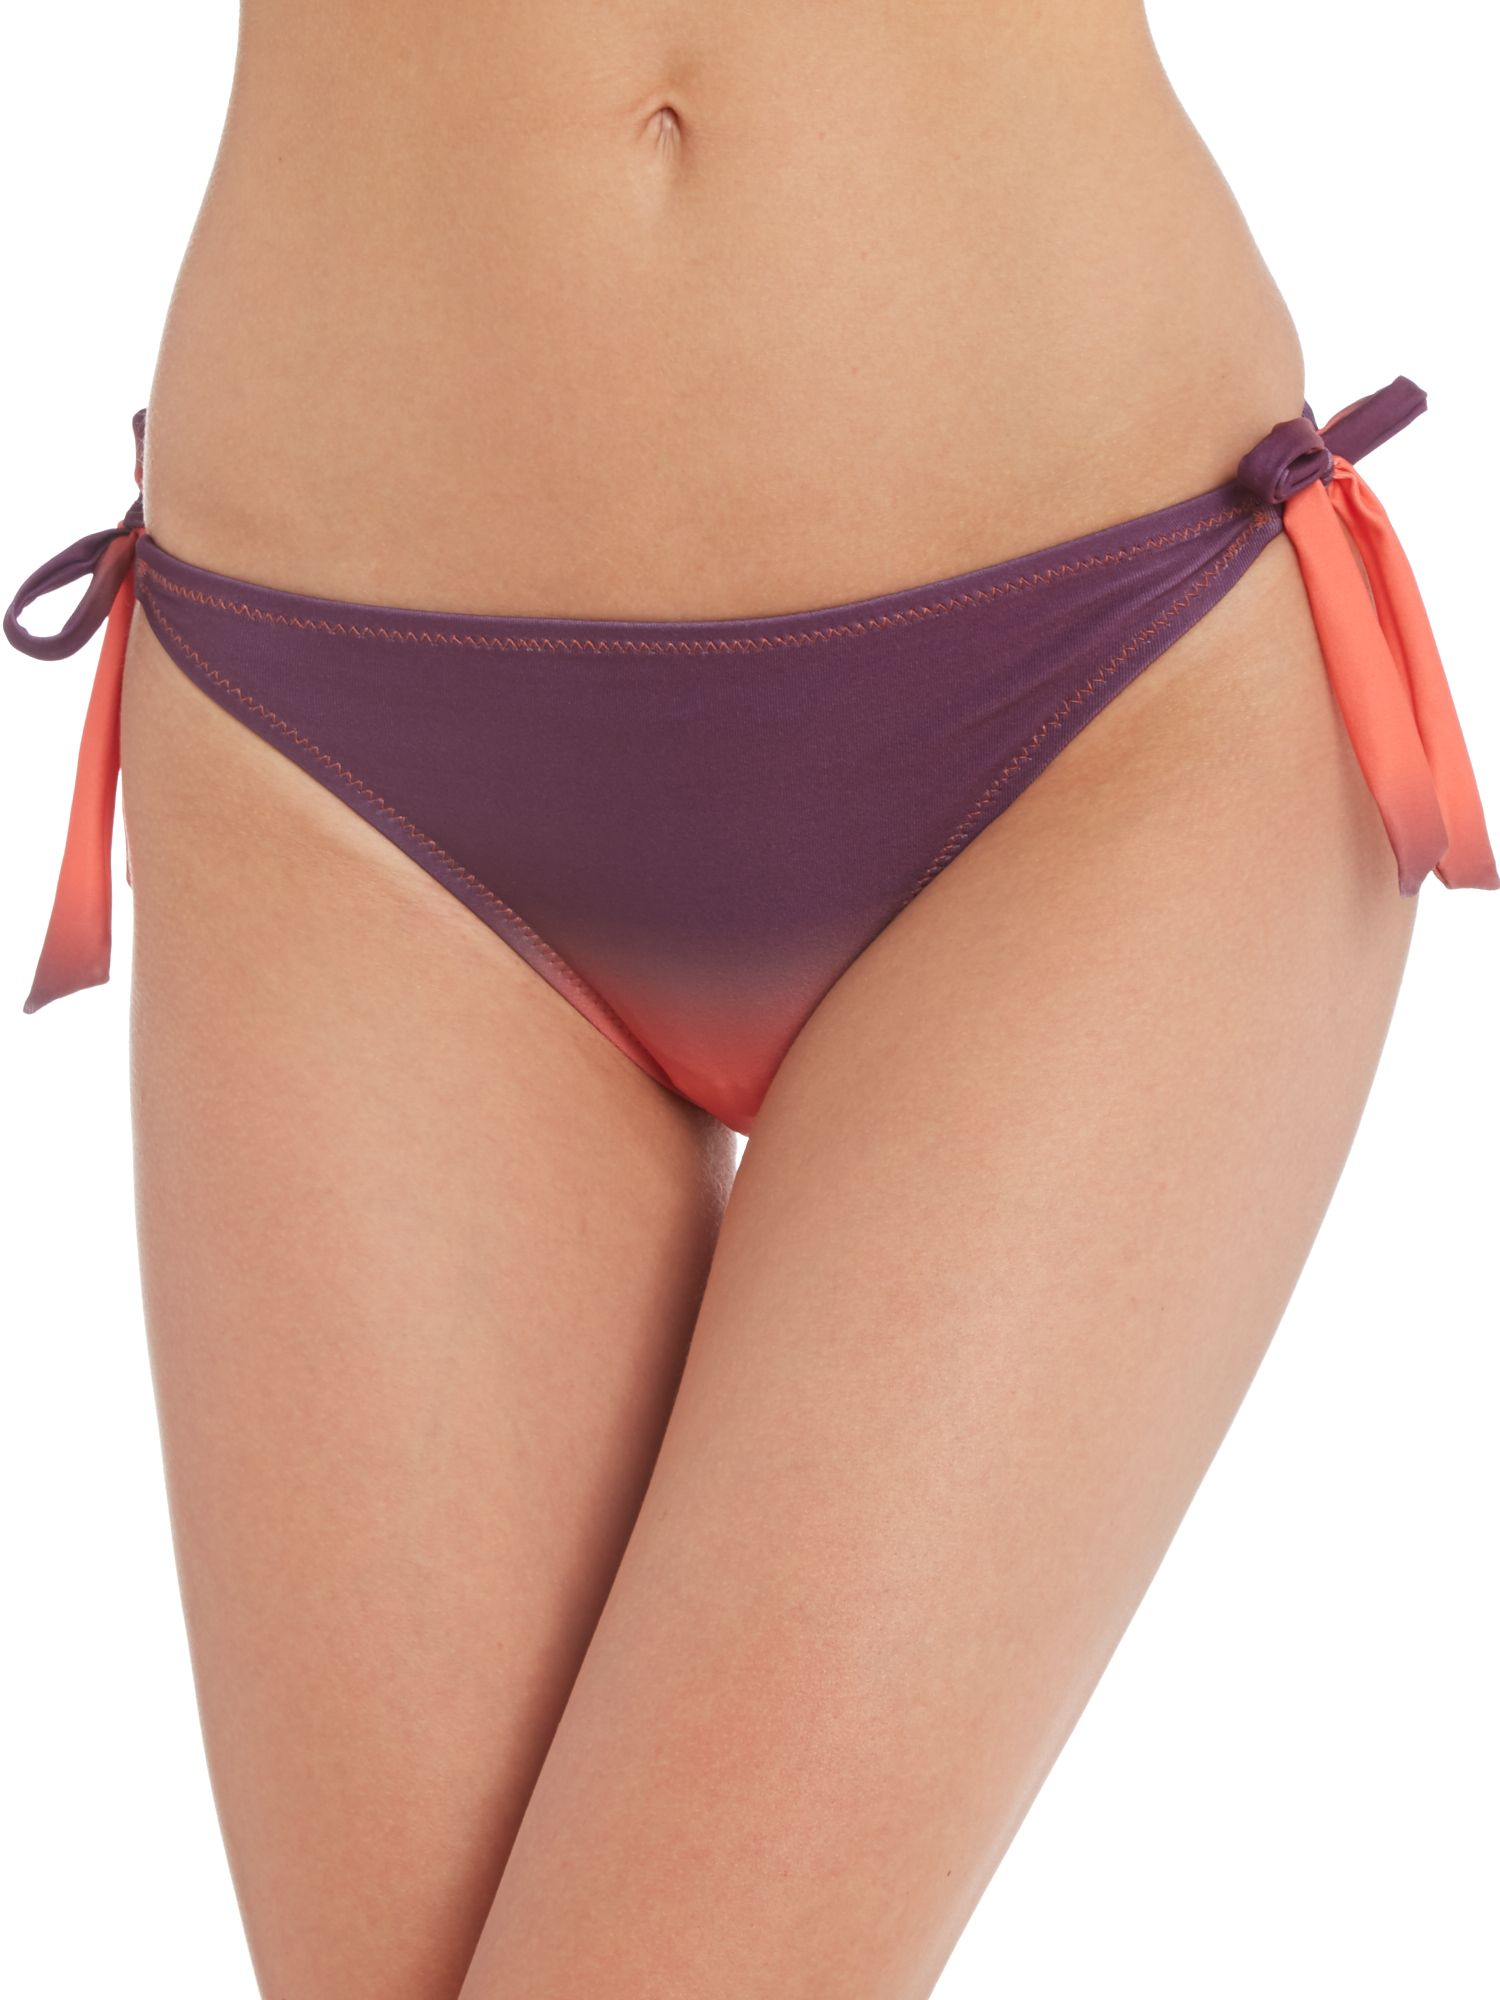 Athena ombre tie side brief